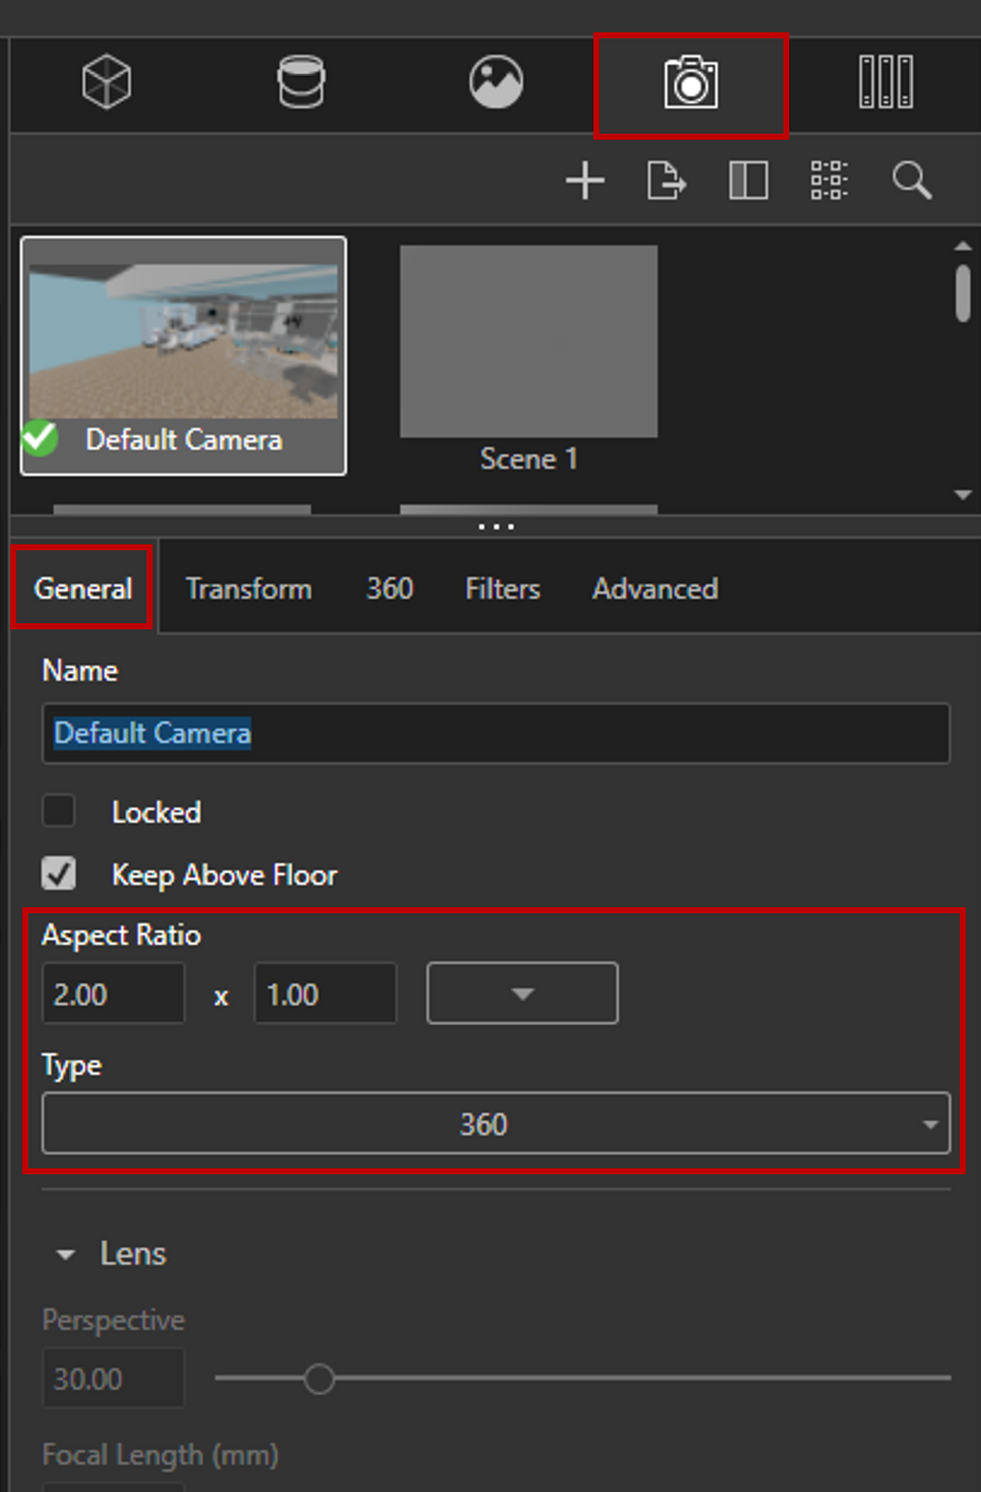 Create a new camera and set to 360